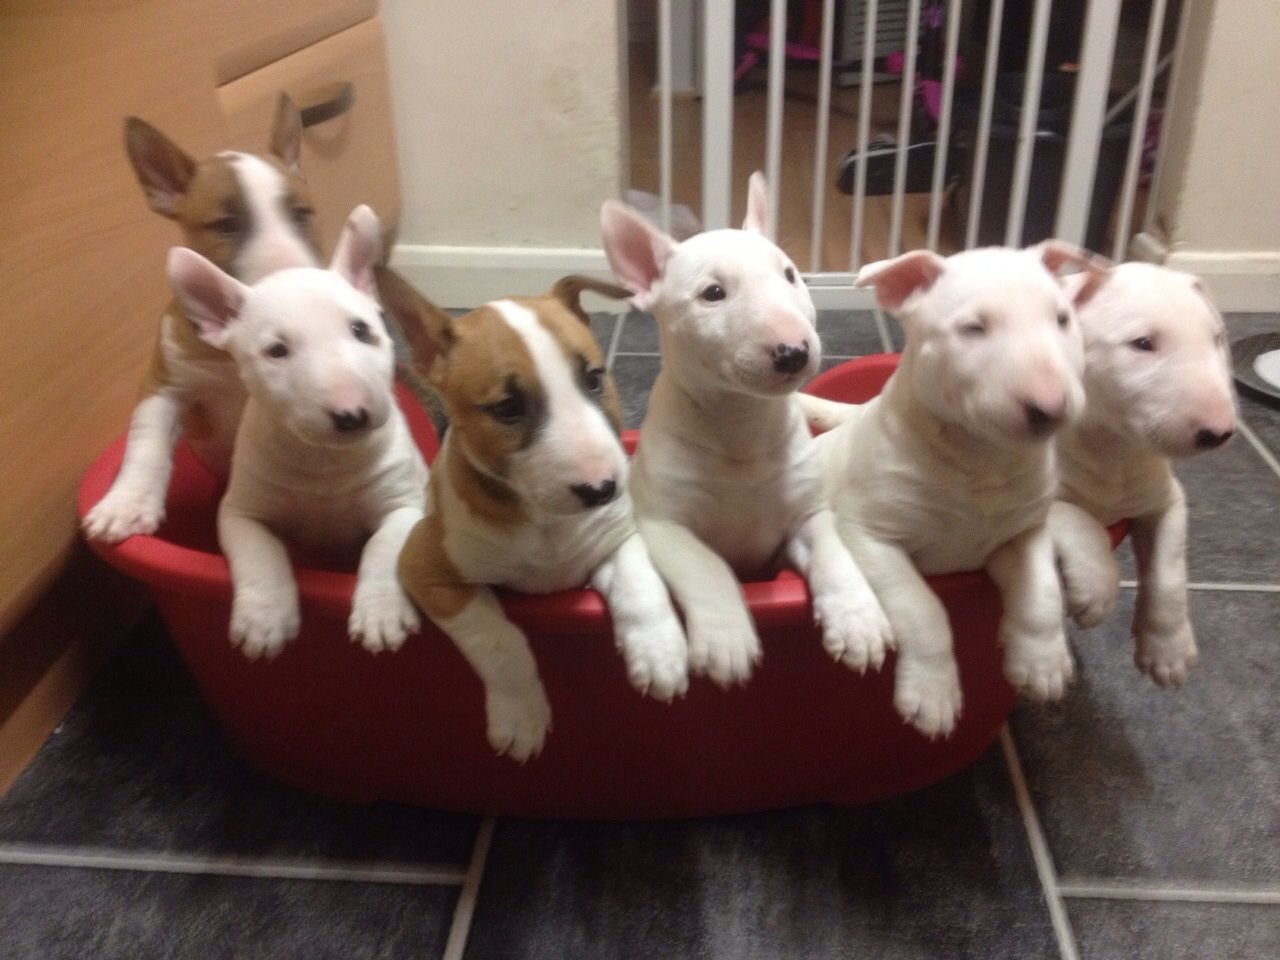 Cute and Adoptable Bull Terrier for adoption